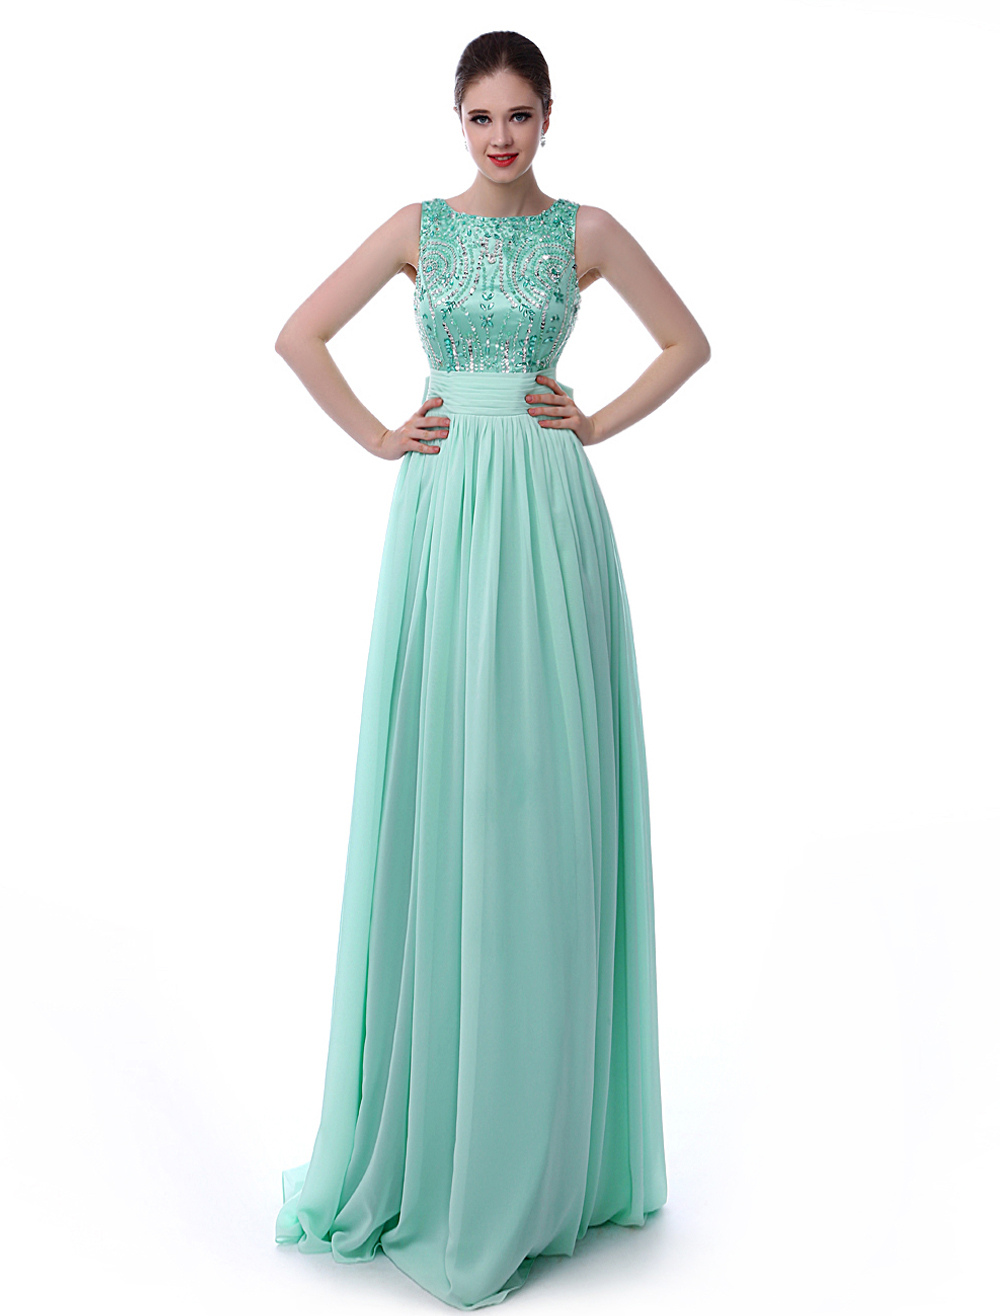 Buy Mint Green Prom Dress V-Back Rhinestone Bow Sash Sequins Chiffon Dress for $154.79 in Milanoo store